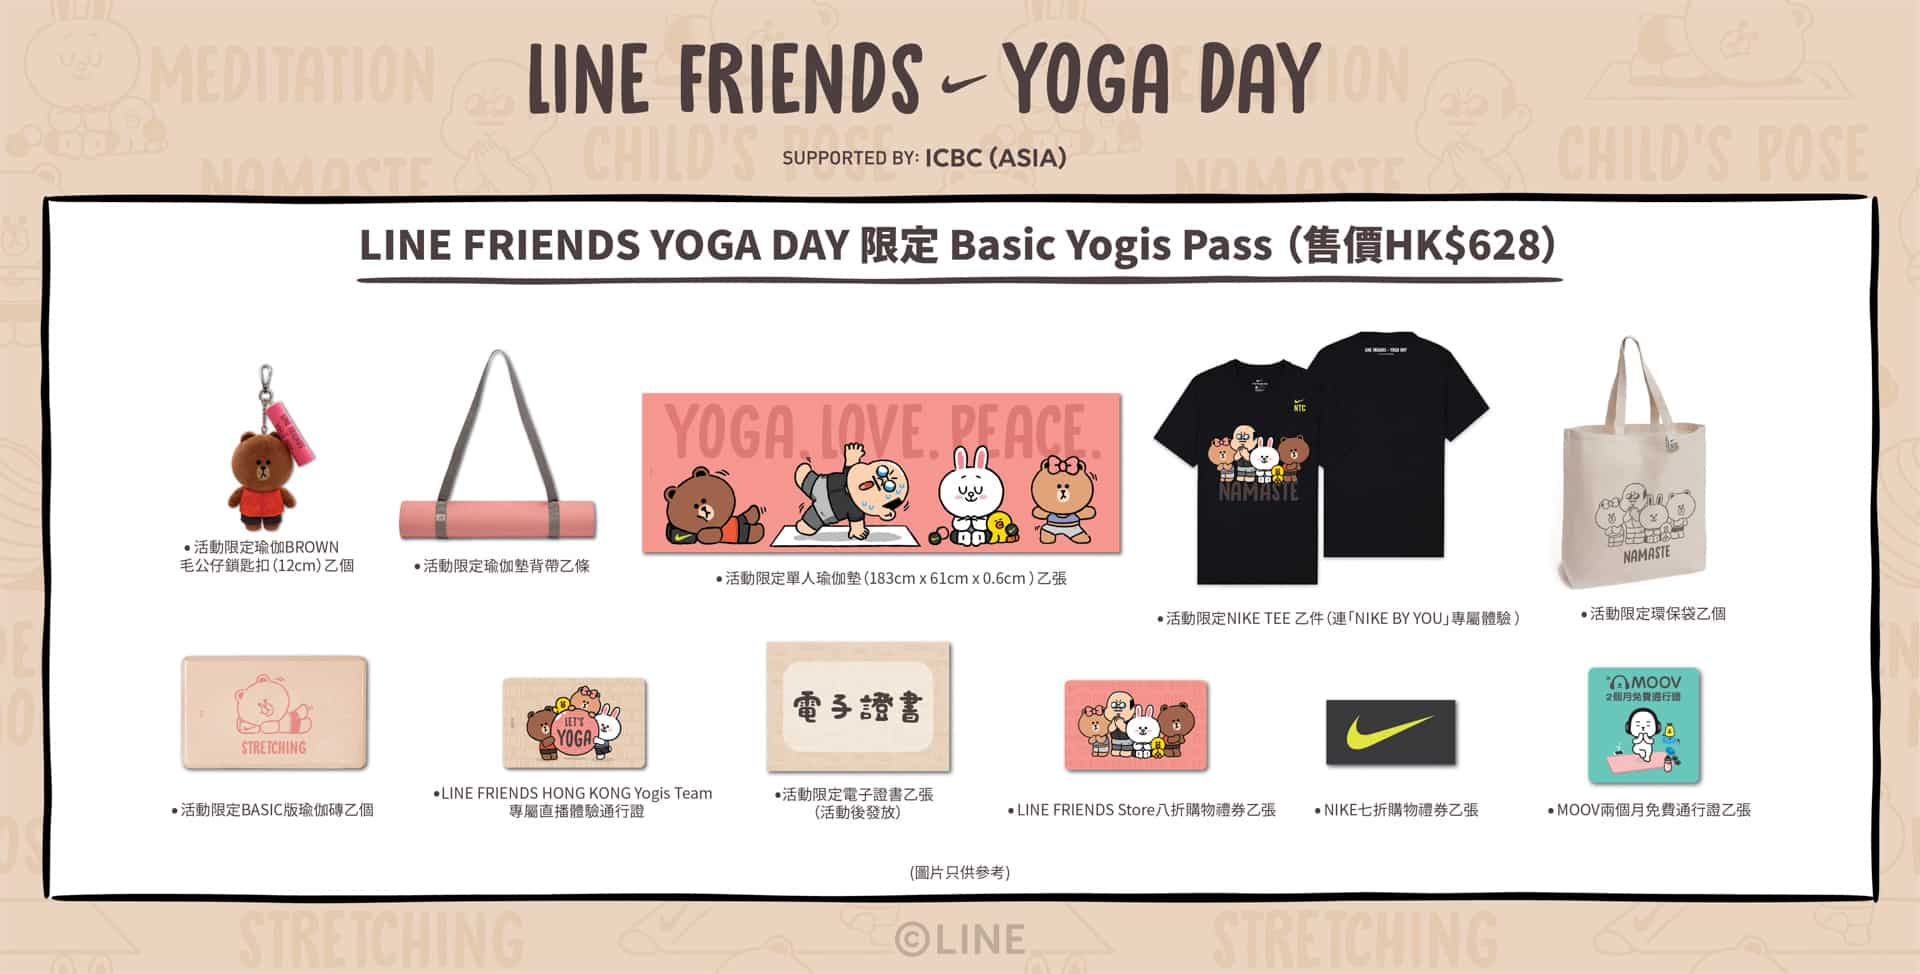 全球首個LINE FRIENDS瑜伽體驗|《LINE FRIENDS YOGA DAY》 LINE FRIENDS YOGA DAY限定Basic Yogis Pass